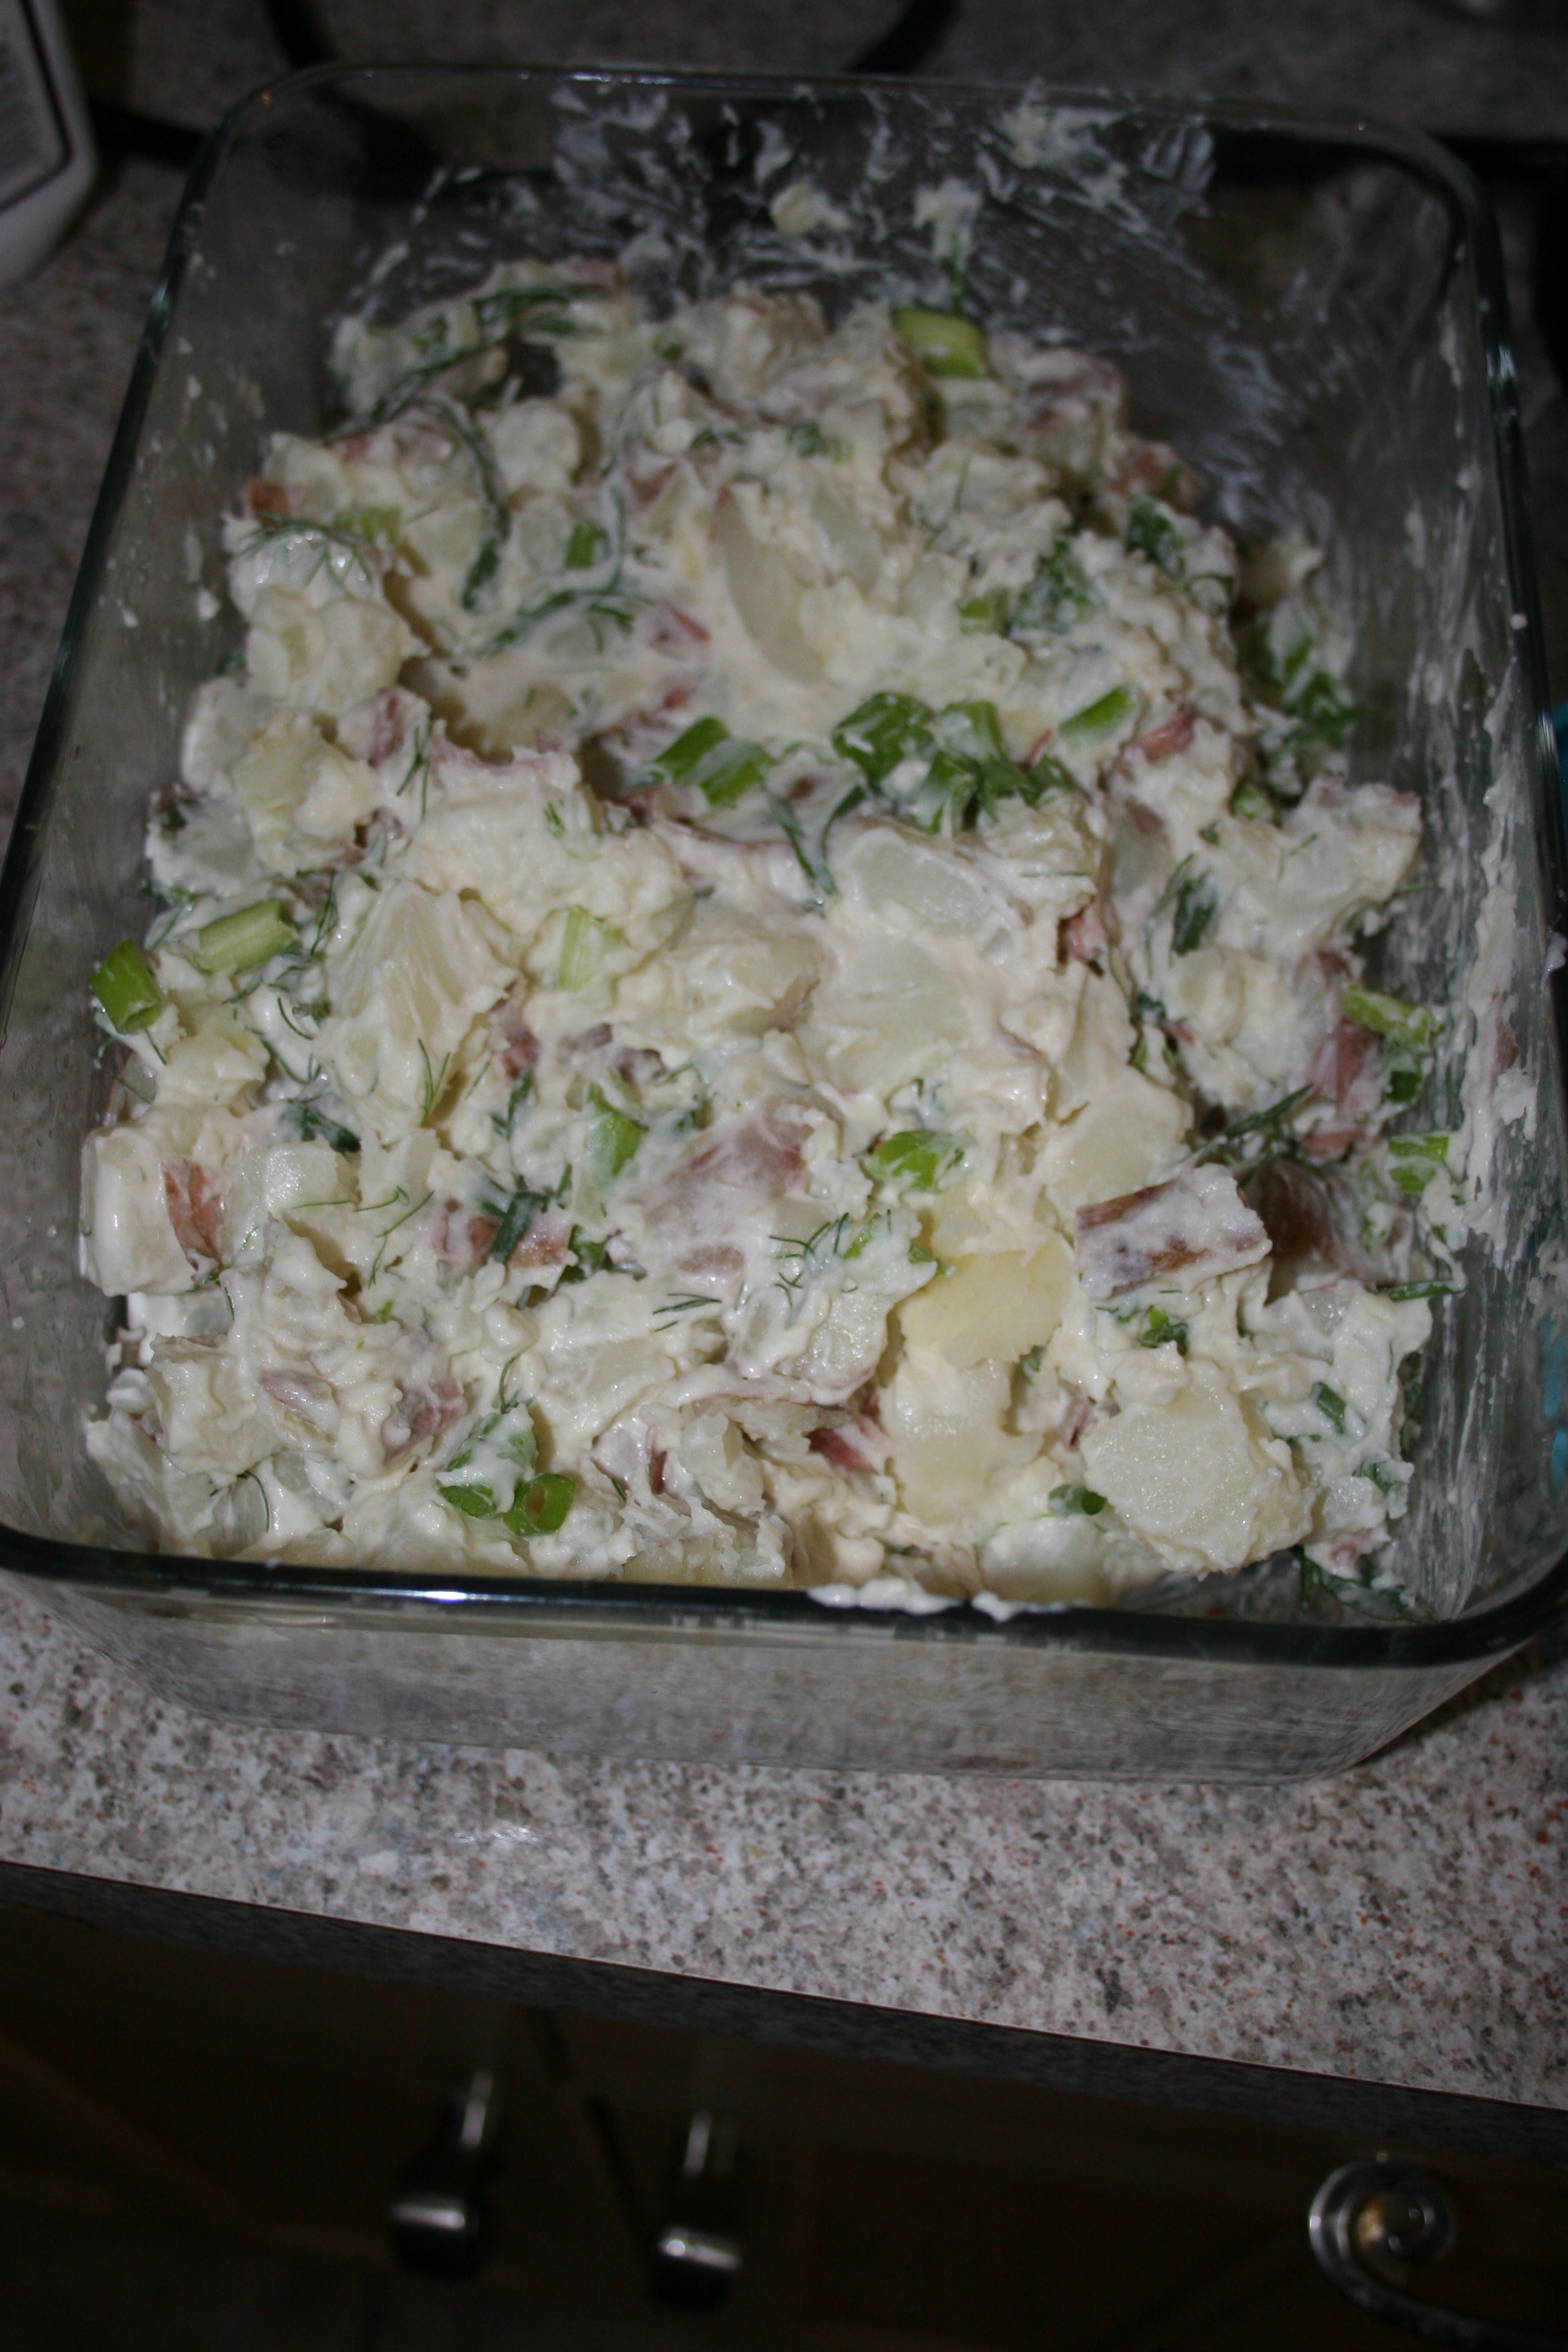 Barefoot Contessa Old Fashioned Potato Salad